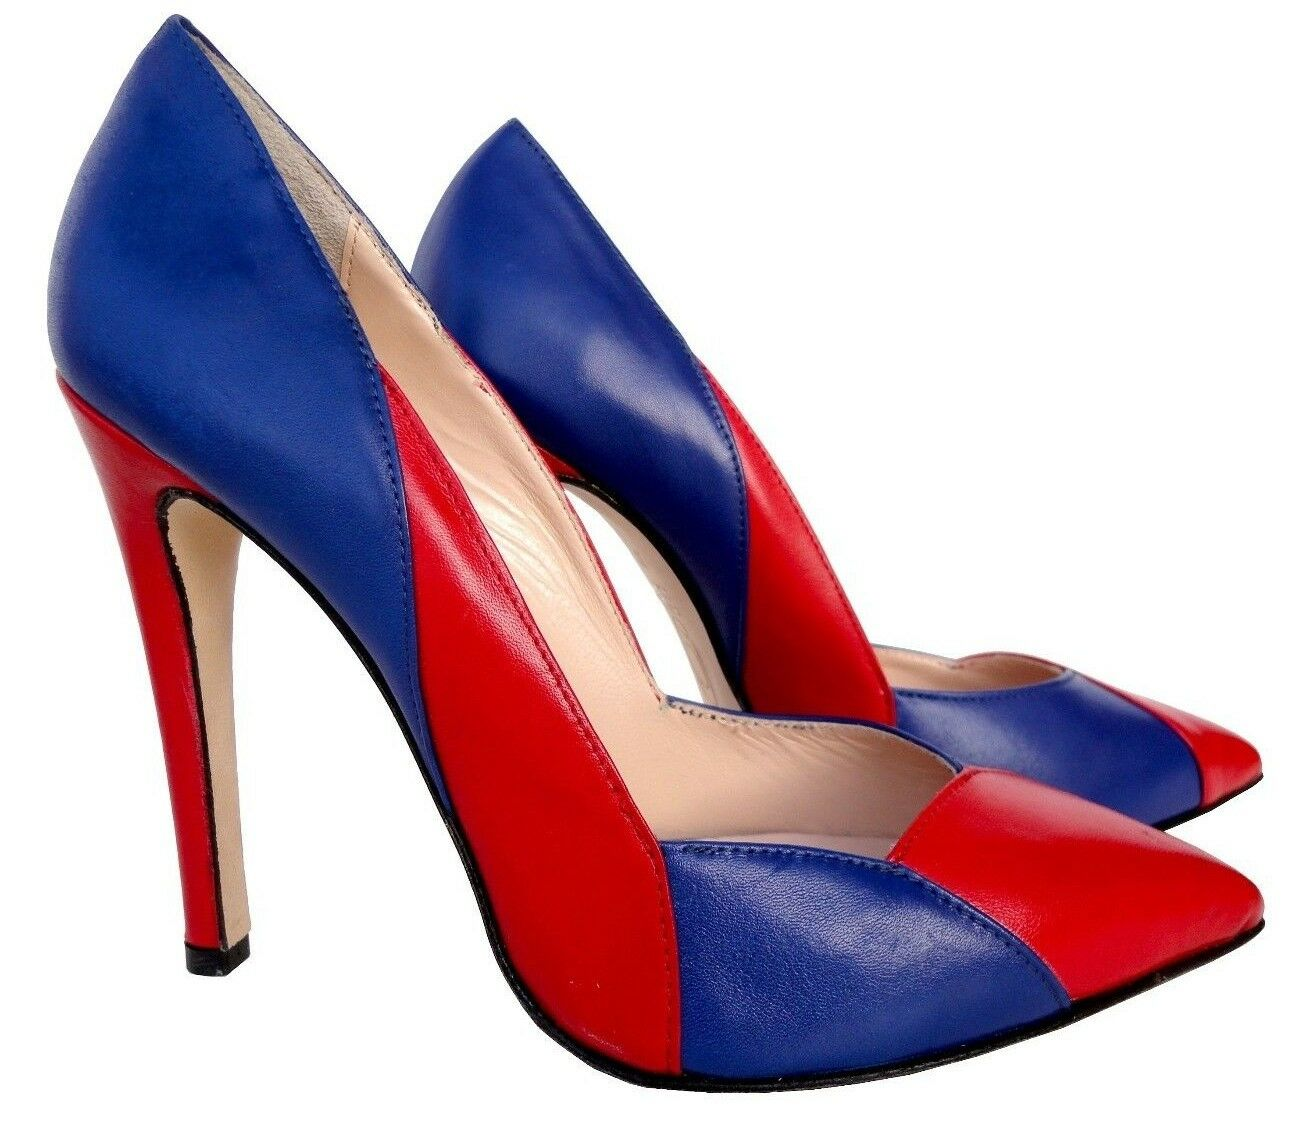 CQ COUTURE ITALY NEW HEELS POINTY PUMPS SCHUHE DECOLTE LEATHER blueE RED red 39